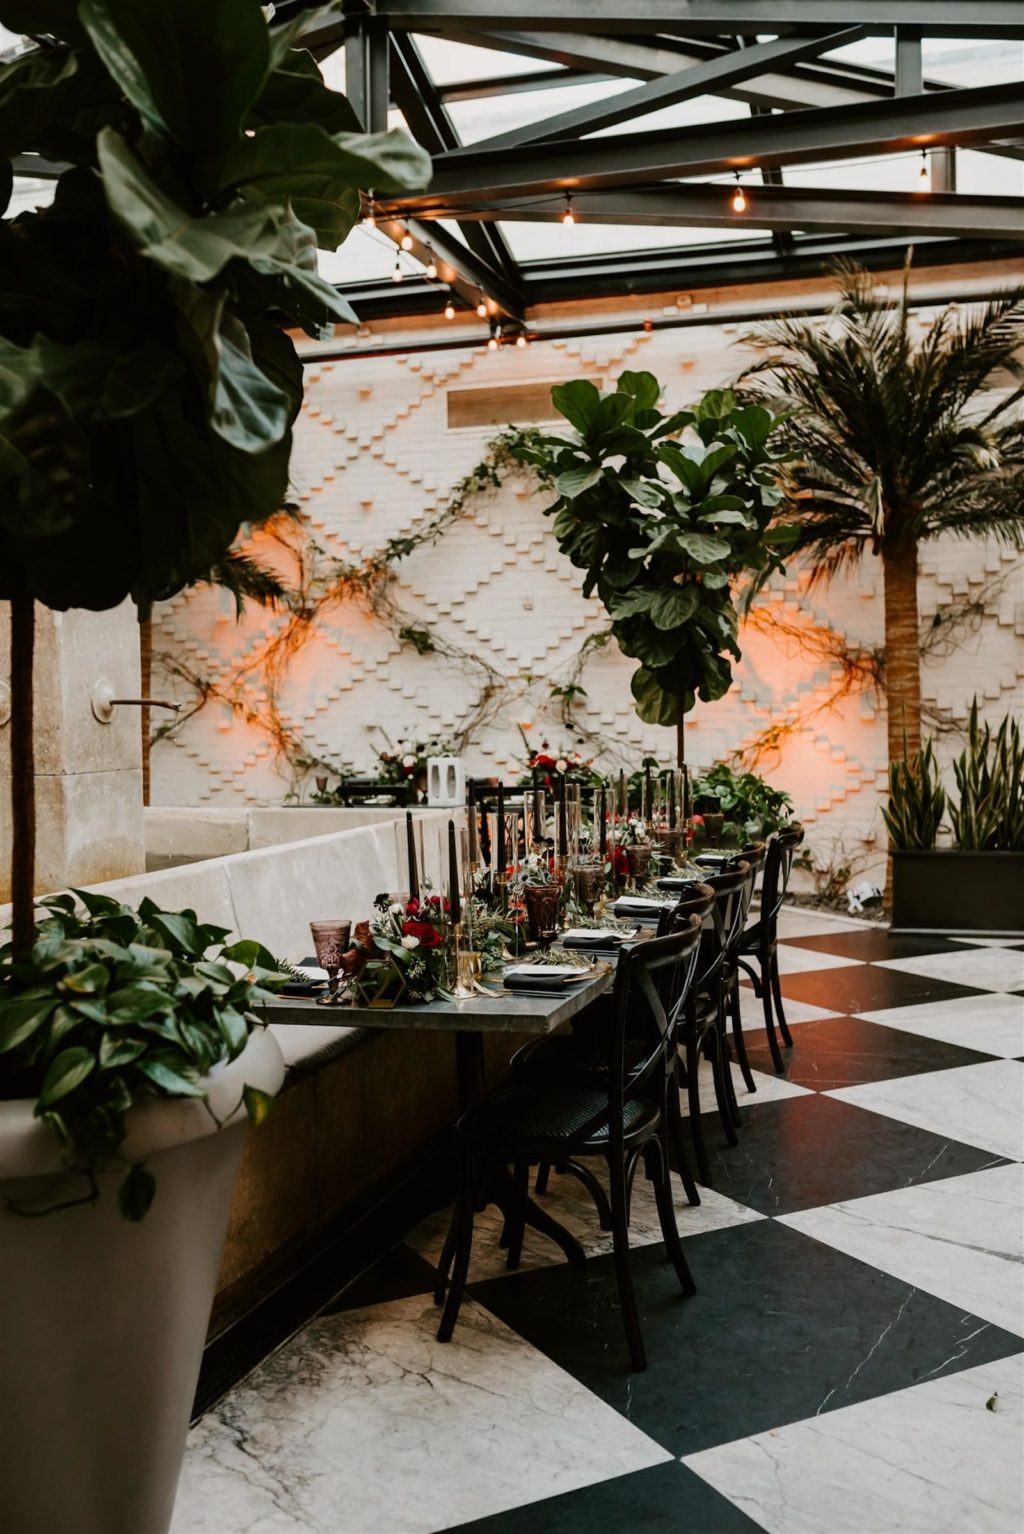 Downtown Tampa Industrial Intimate Historic Wedding with Atrium Conservatory Dinner Reception under Canopy of String Lights | Long Feasting Banquet Tables with Black and Gold Candlesticks and Black Cross Back Chairs | Winsor Event Studio